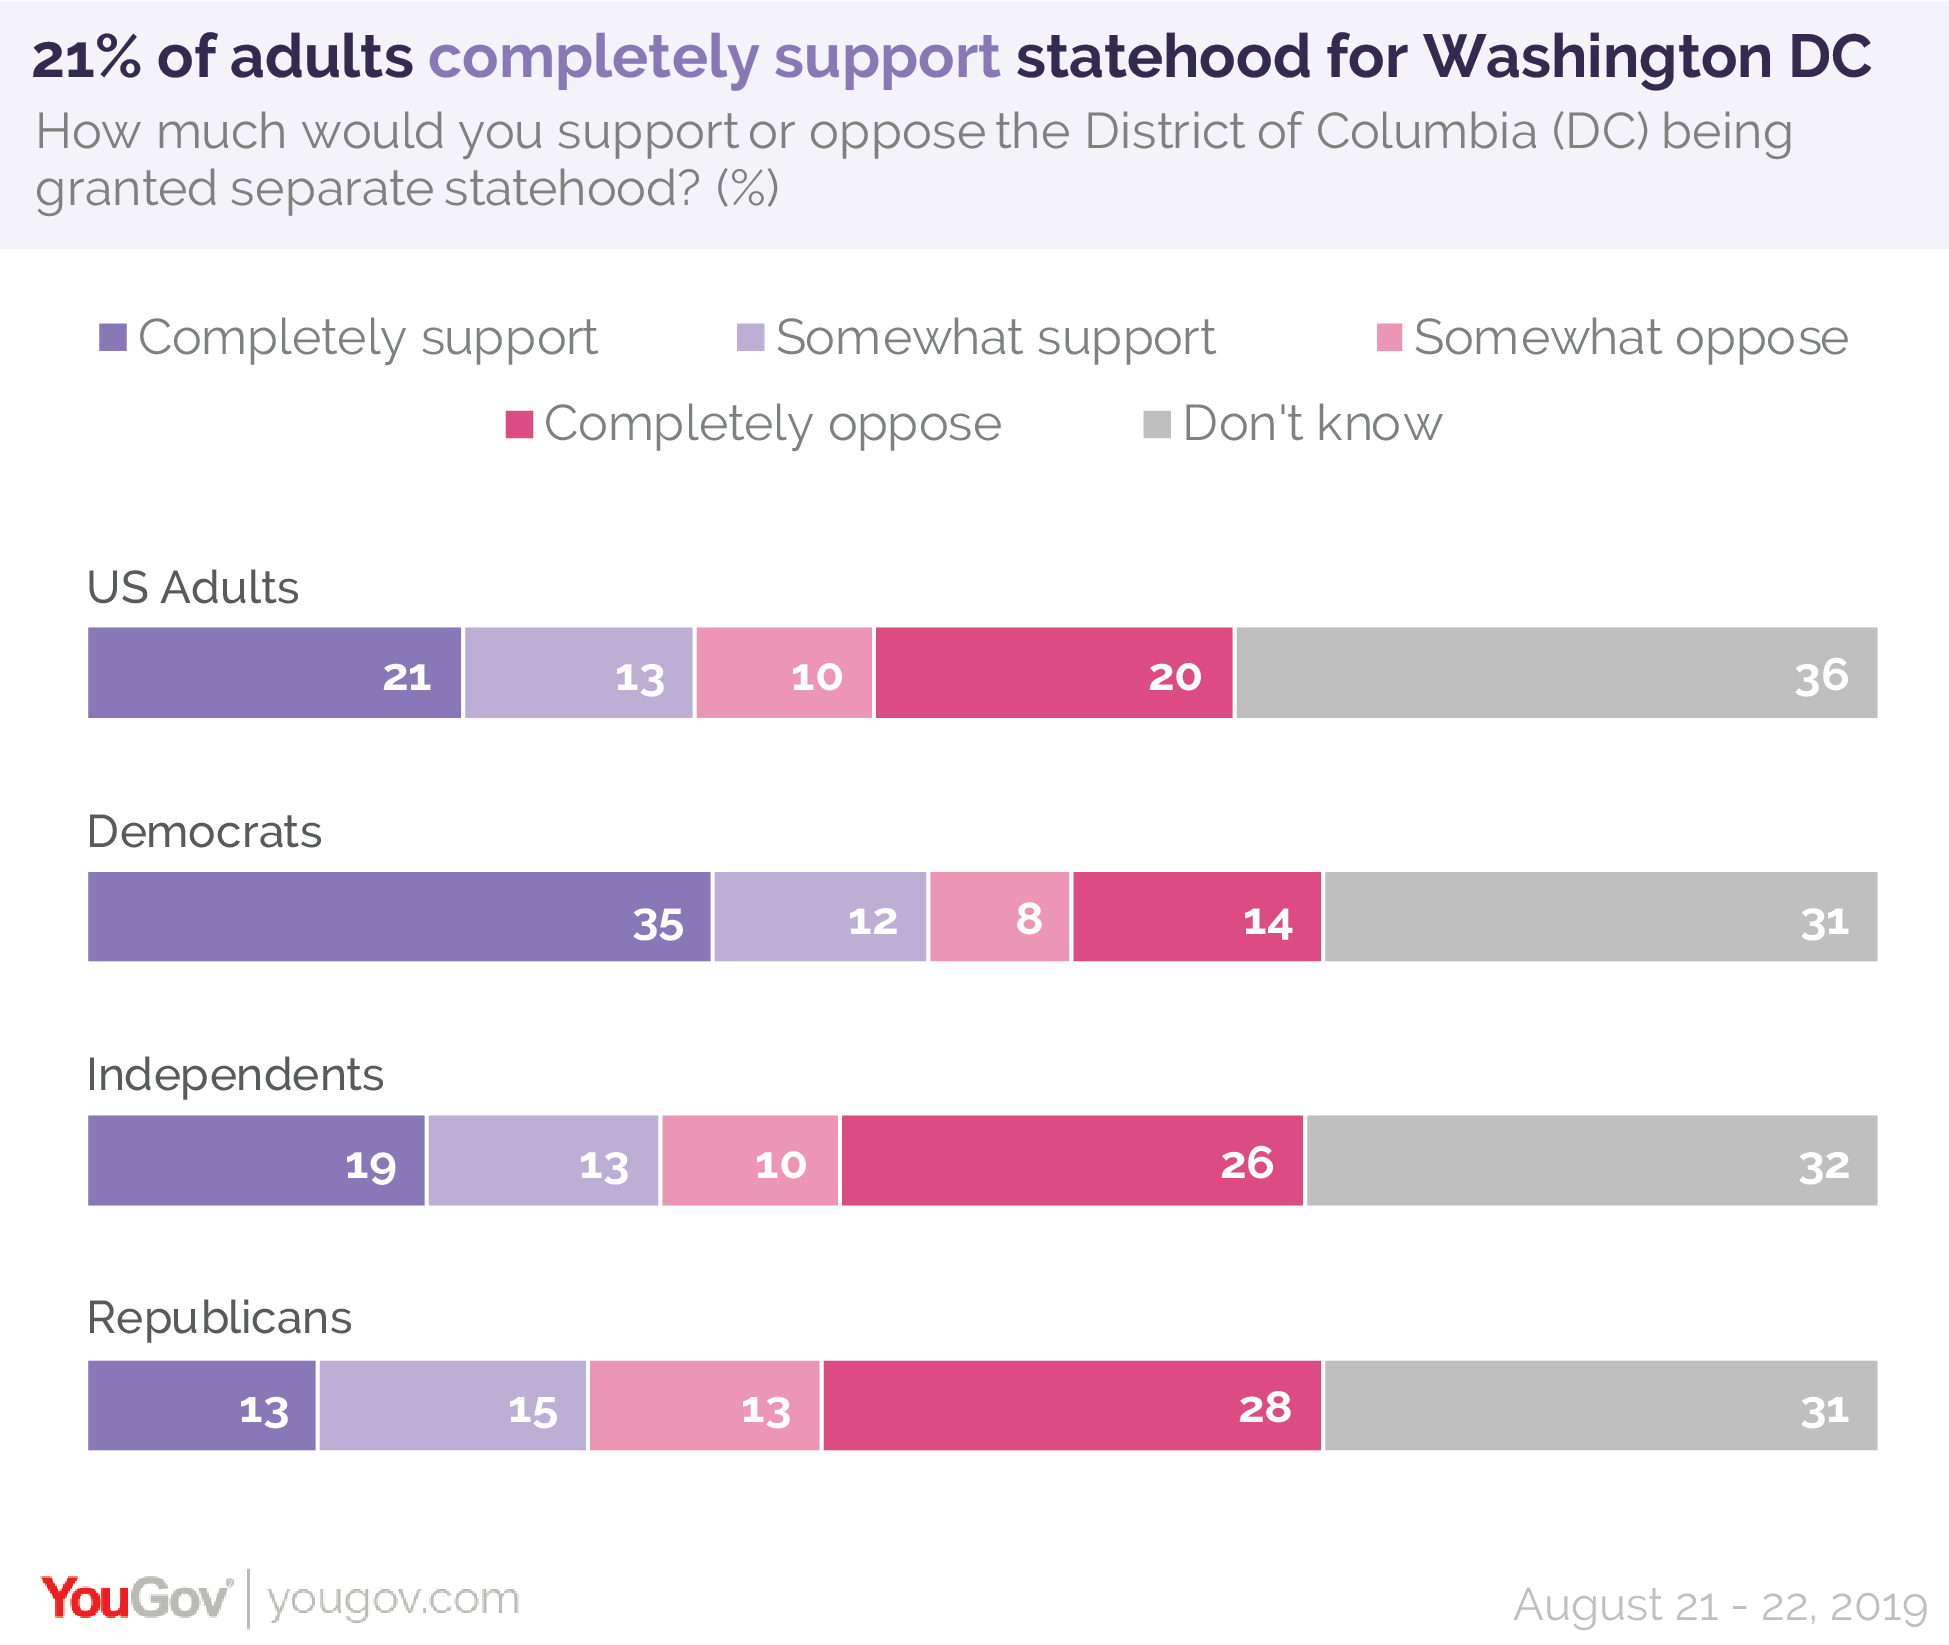 21% of adults completely support statehood for Washington, D.C.